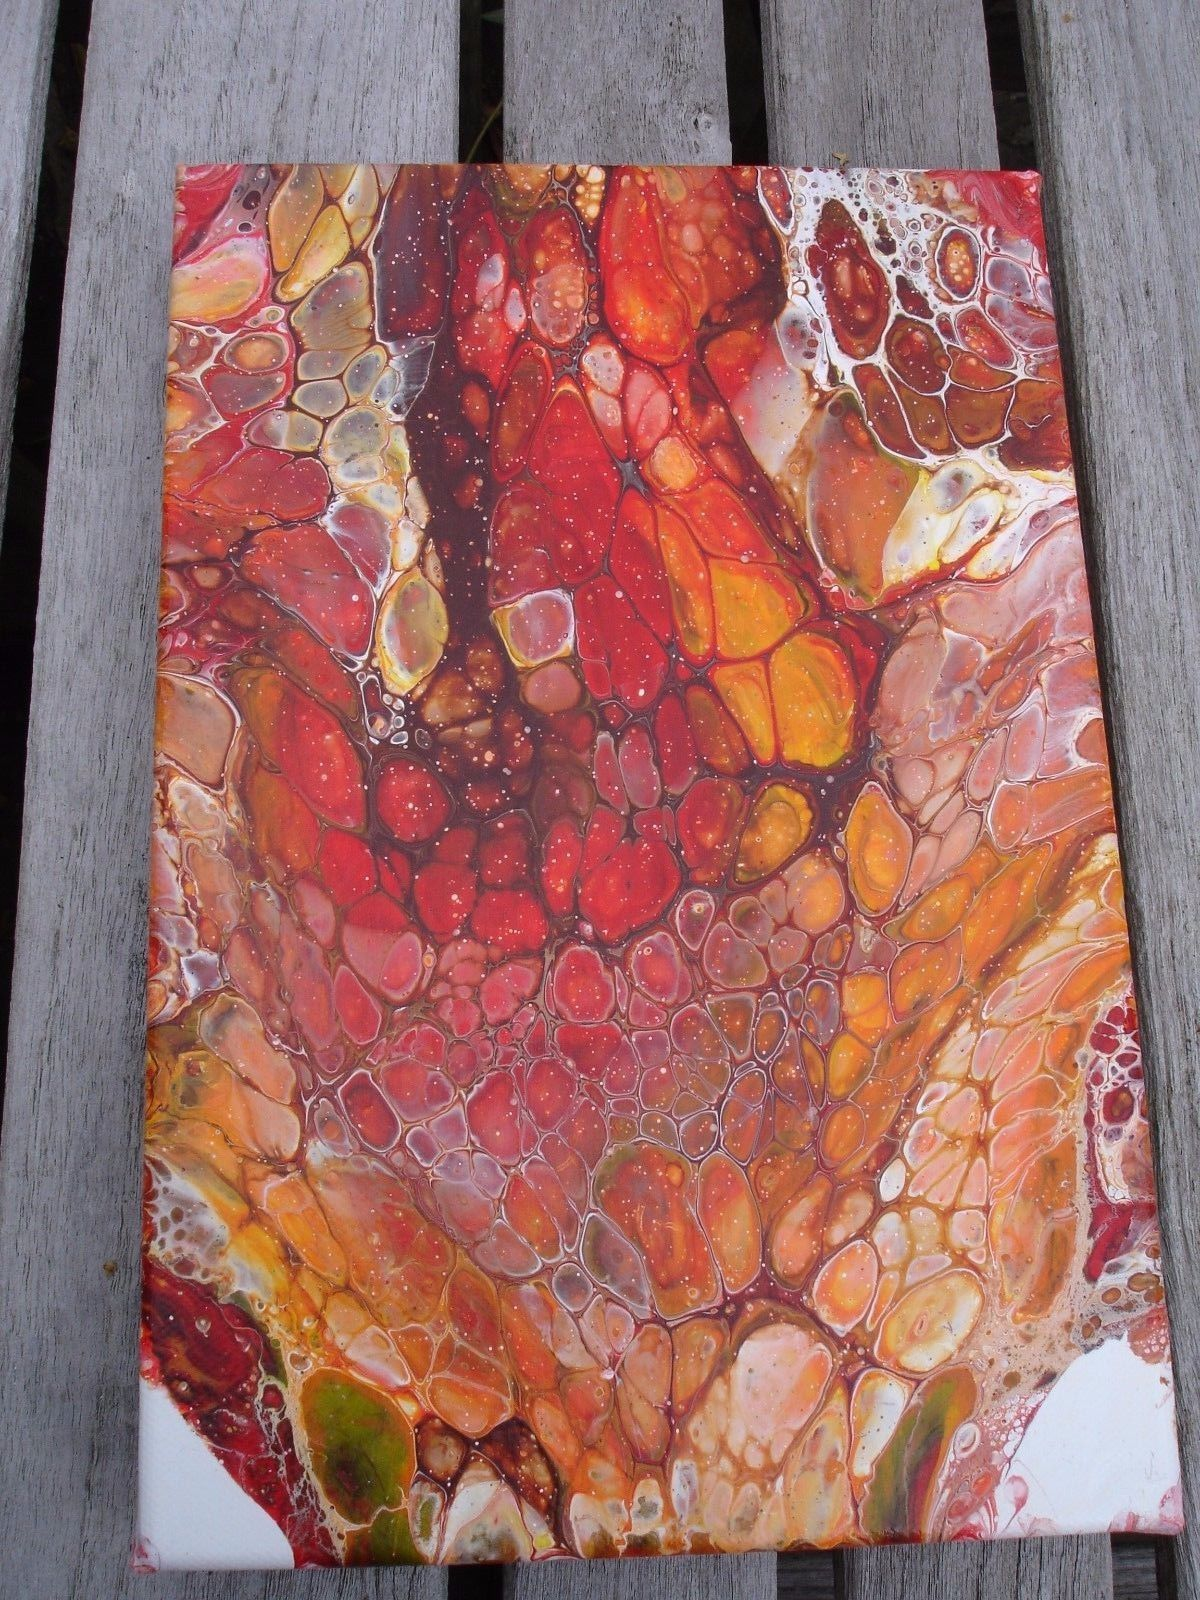 Lovely original abstract acrylic fluid painting